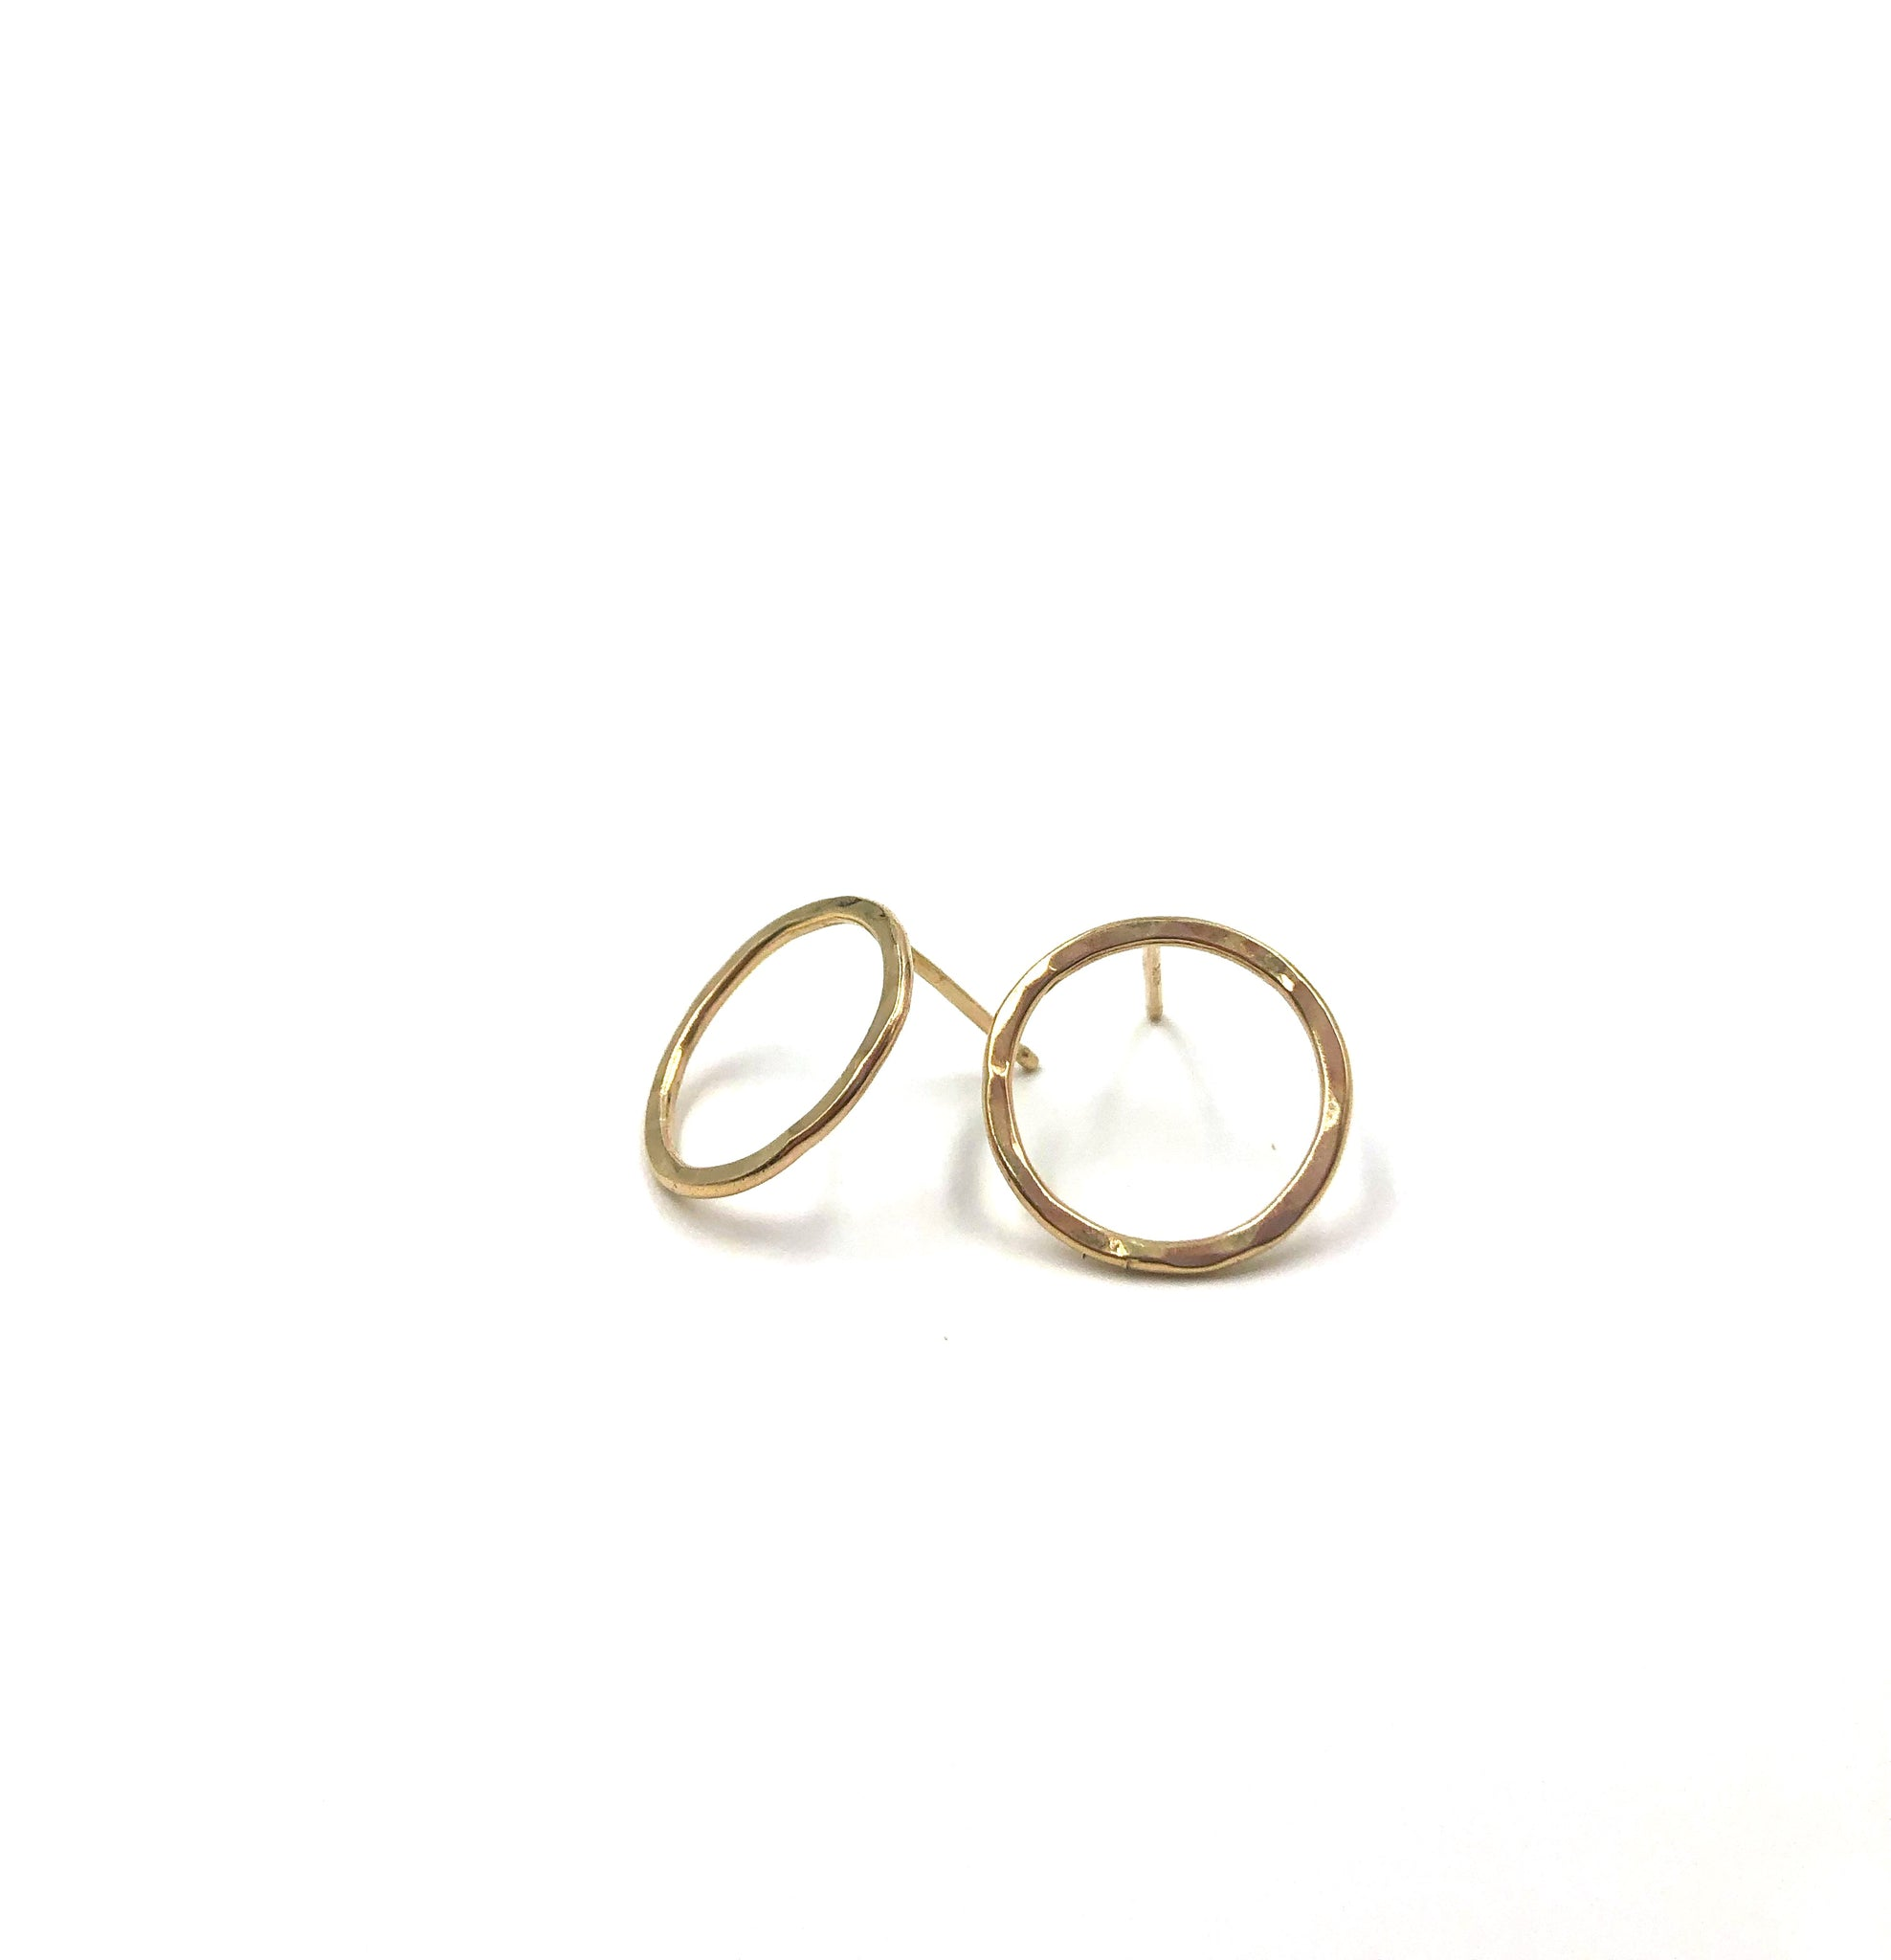 Large Circle Stud Earrings- 14k gold filled